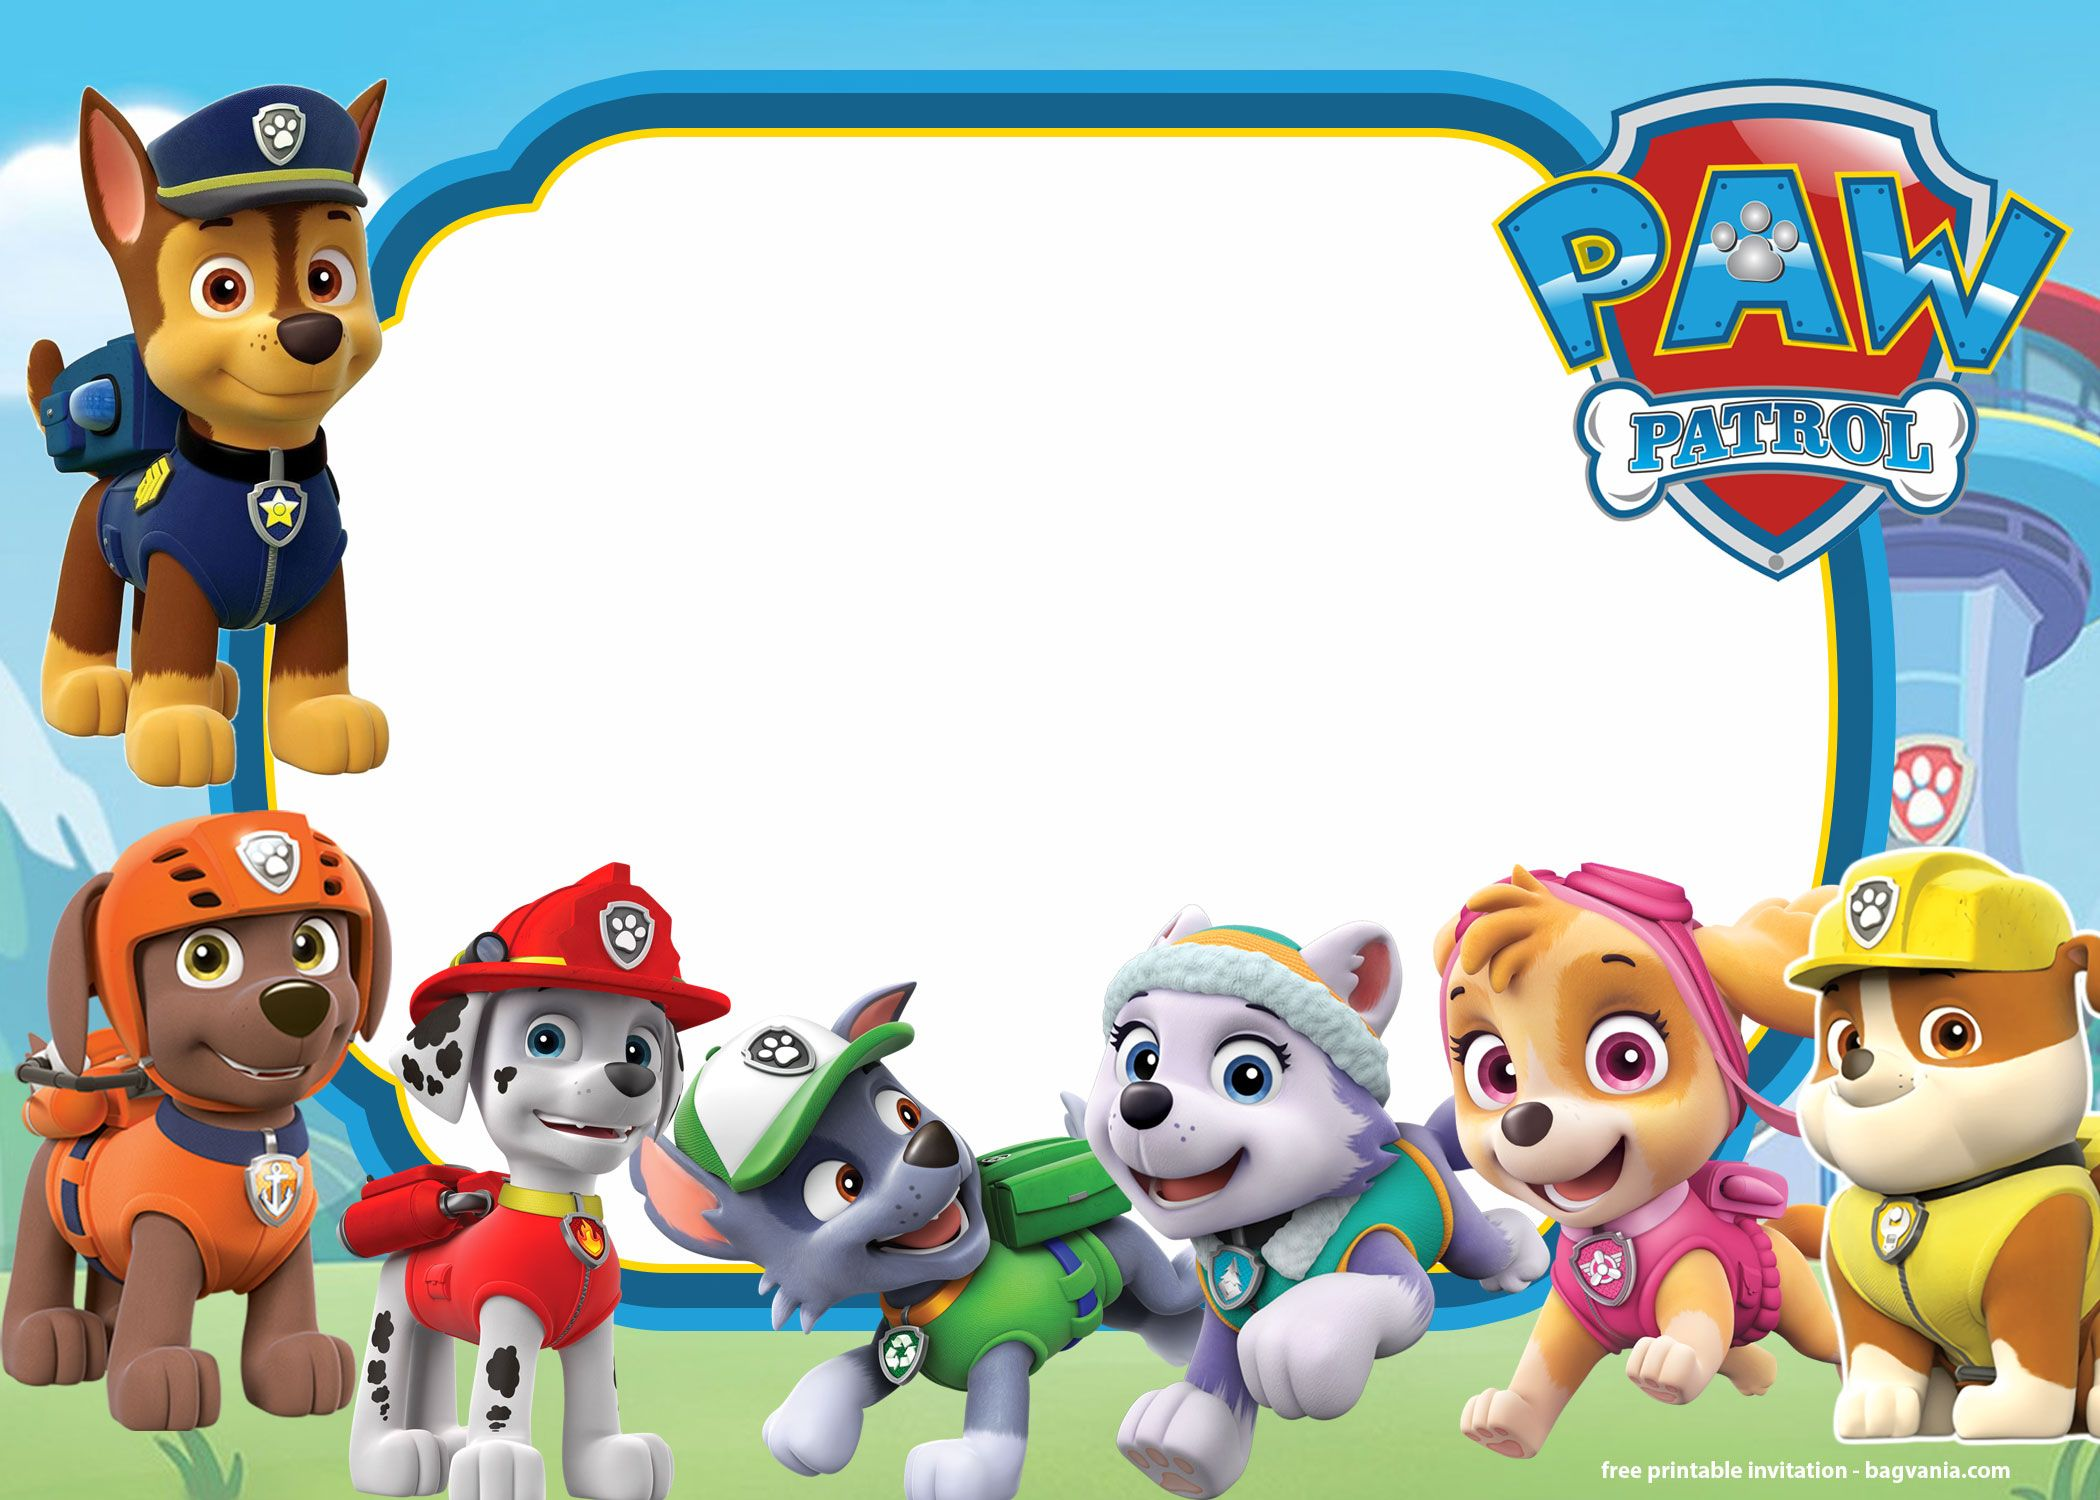 Free Printable Paw Patrol Invitation Templates Lookout Version Paw Patrol Party Invitations Paw Patrol Birthday Invitations Paw Patrol Invitations